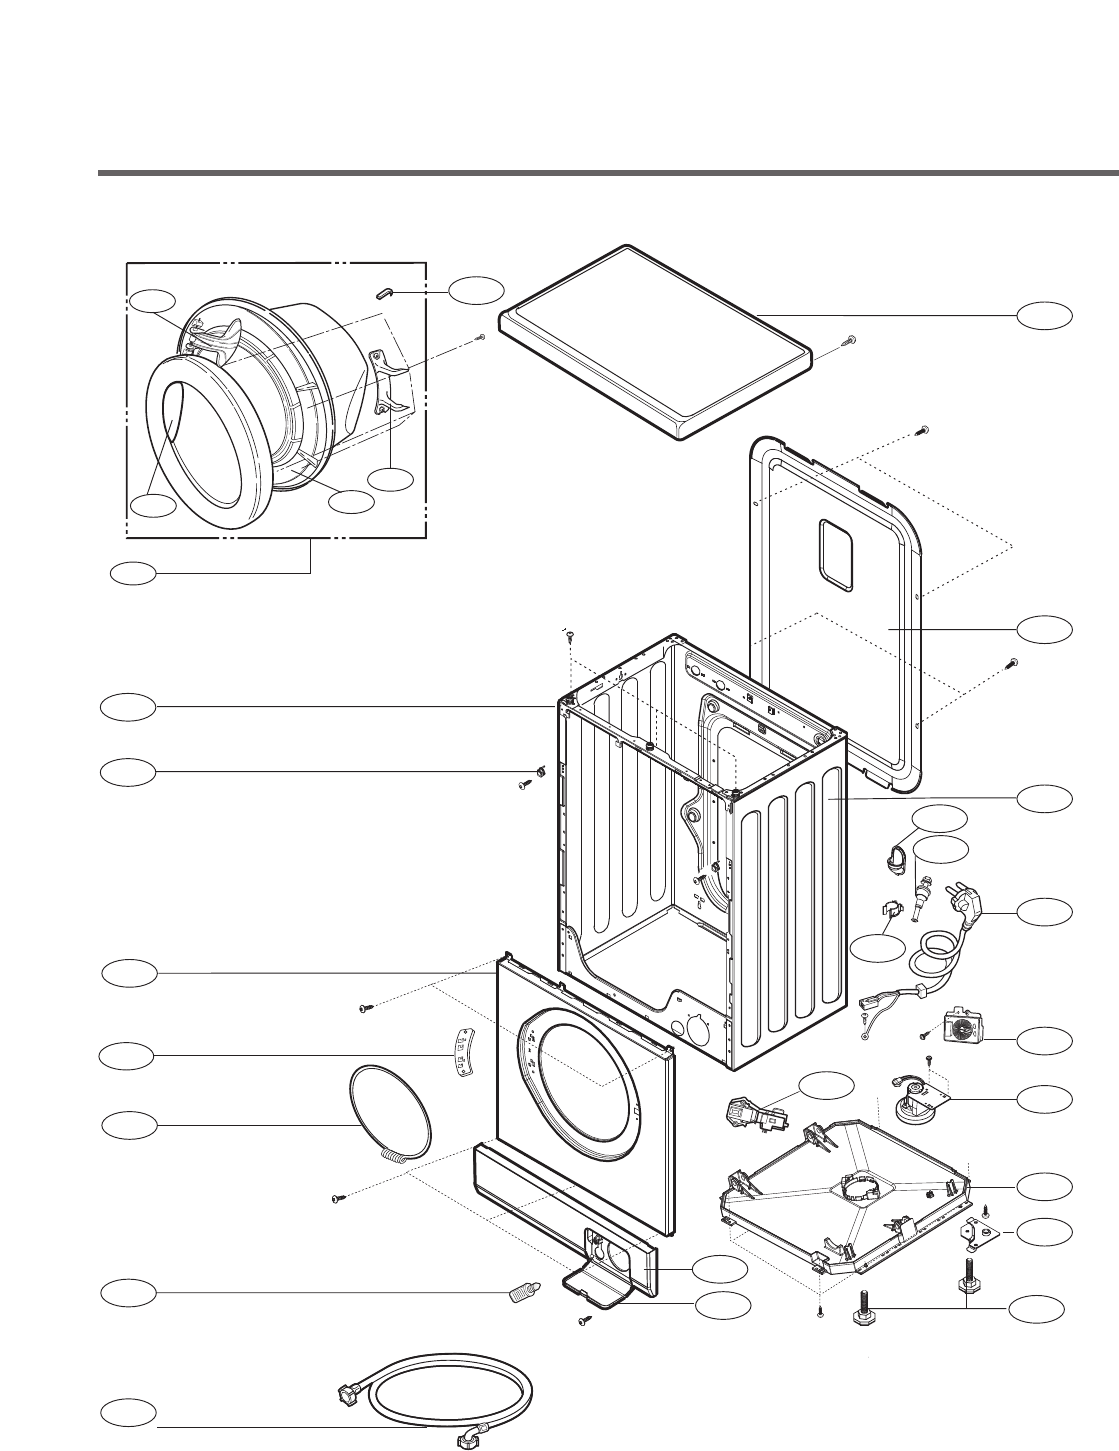 Best Kitchen Gallery: Page 44 Of Lg Electronics Washer F1256qd User Guide Manualsonline of Kitchen Cabinet Exploded View on rachelxblog.com